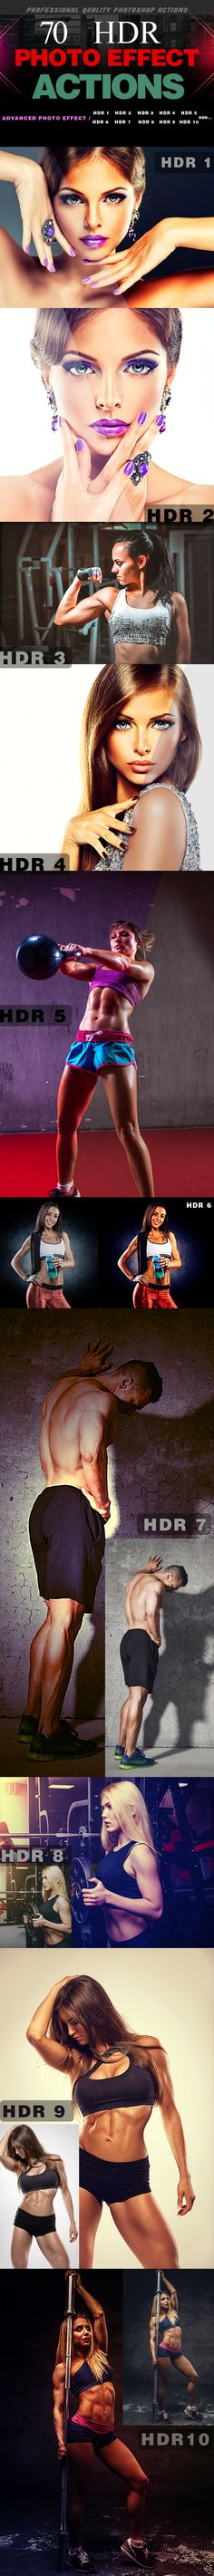 70 HDR Photo Effect Action — Photoshop ATN #best #fashion • Available here → https://graphicriver.net/item/70-hdr-photo-effect-action/19205888?ref=pxcr